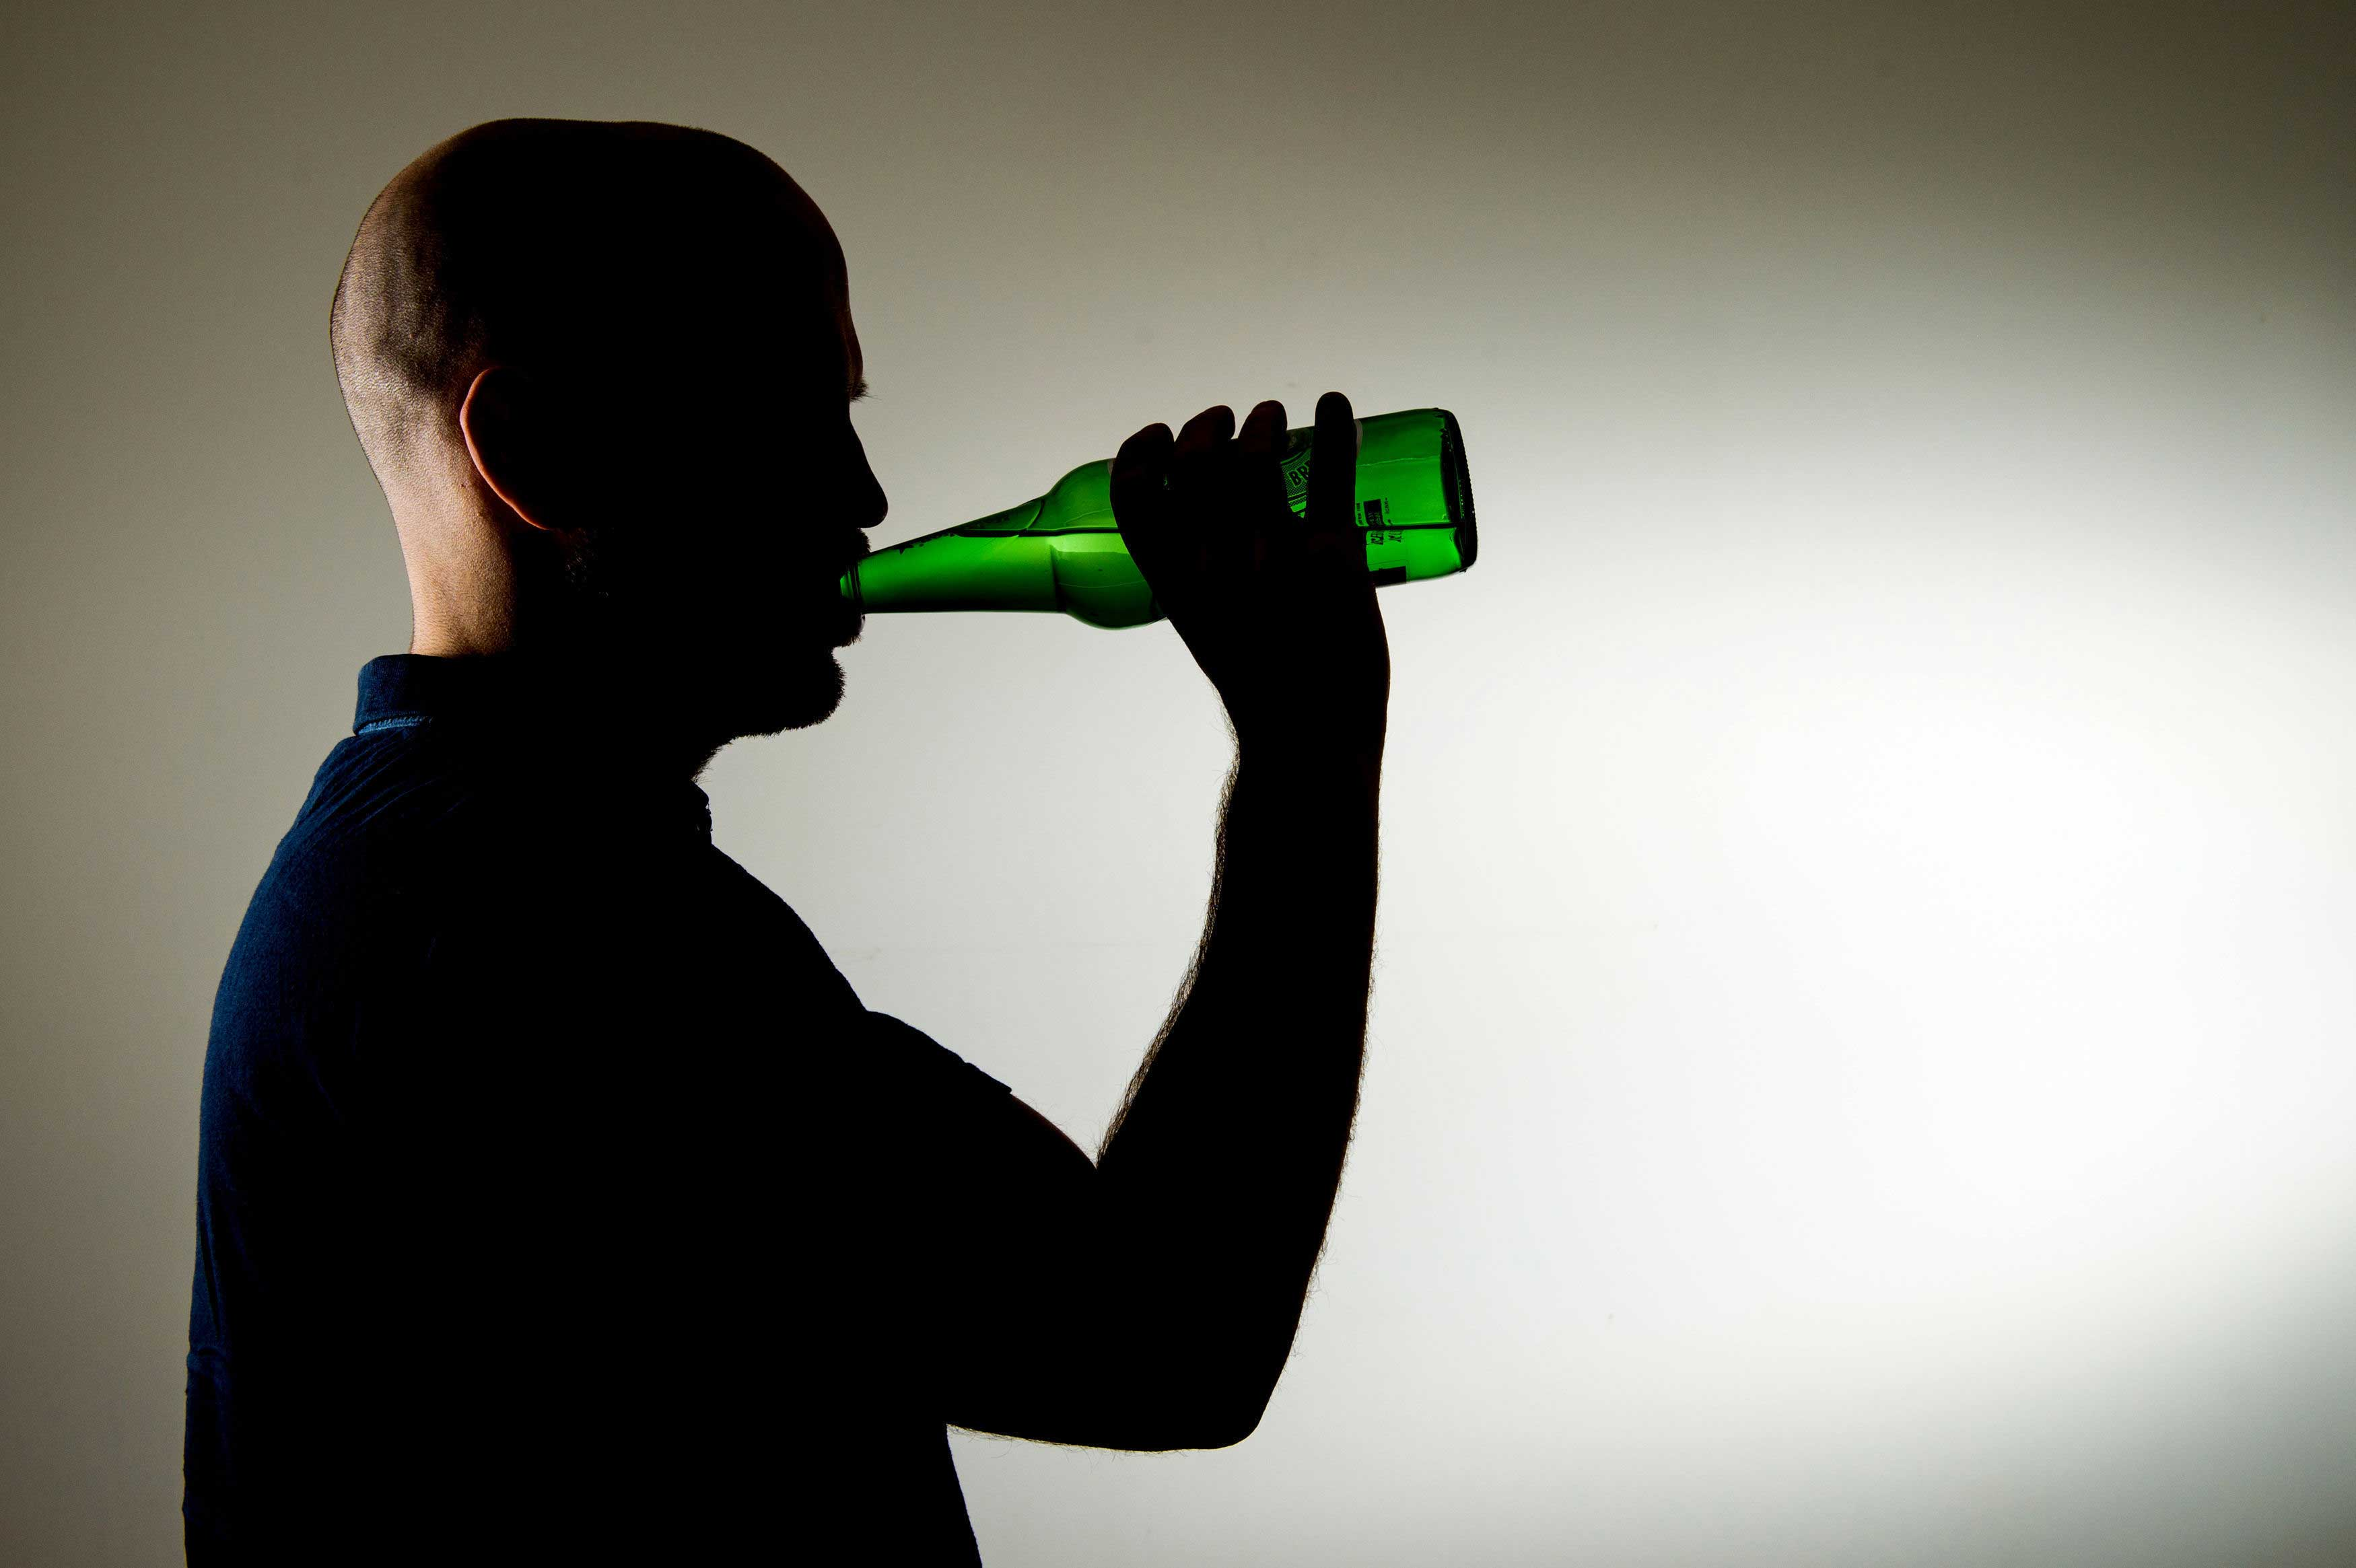 Exceeding recommended alcohol limits cuts years off your life